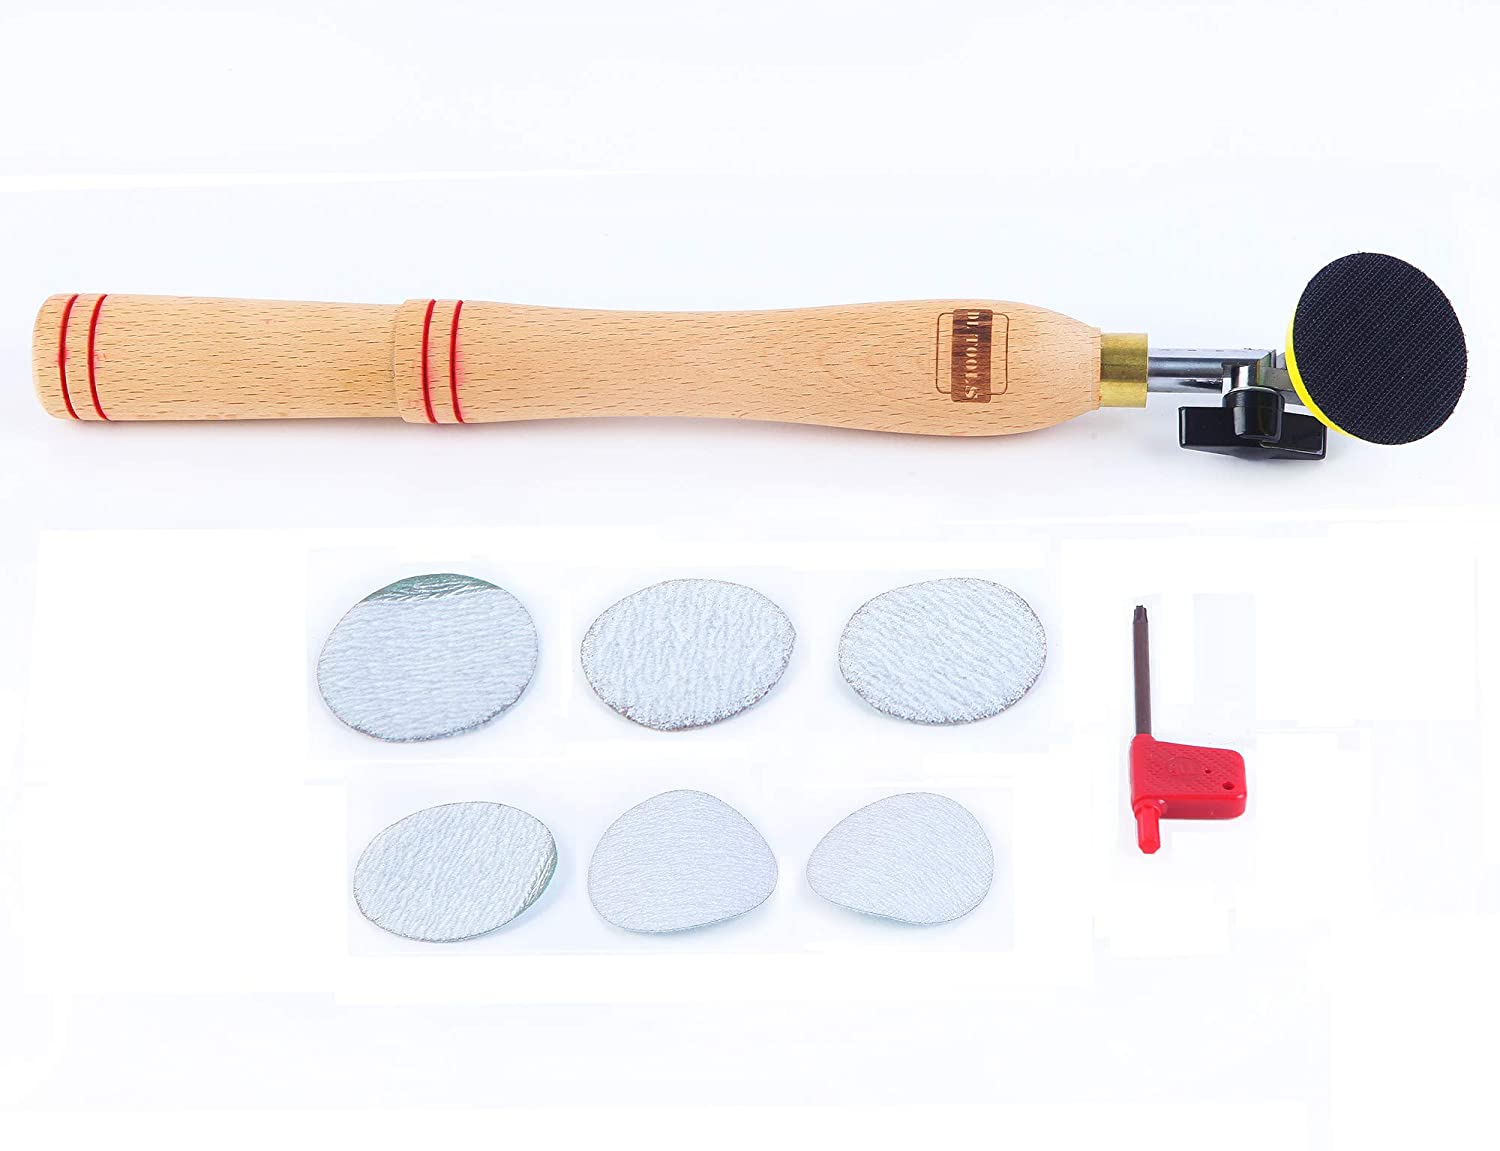 DLtools Woodworking Bowl Hand Sander Tool with Sanding Disc Pad for Wood Turner on Bowls Platters and Concave Surface Turning Polishing Sanding